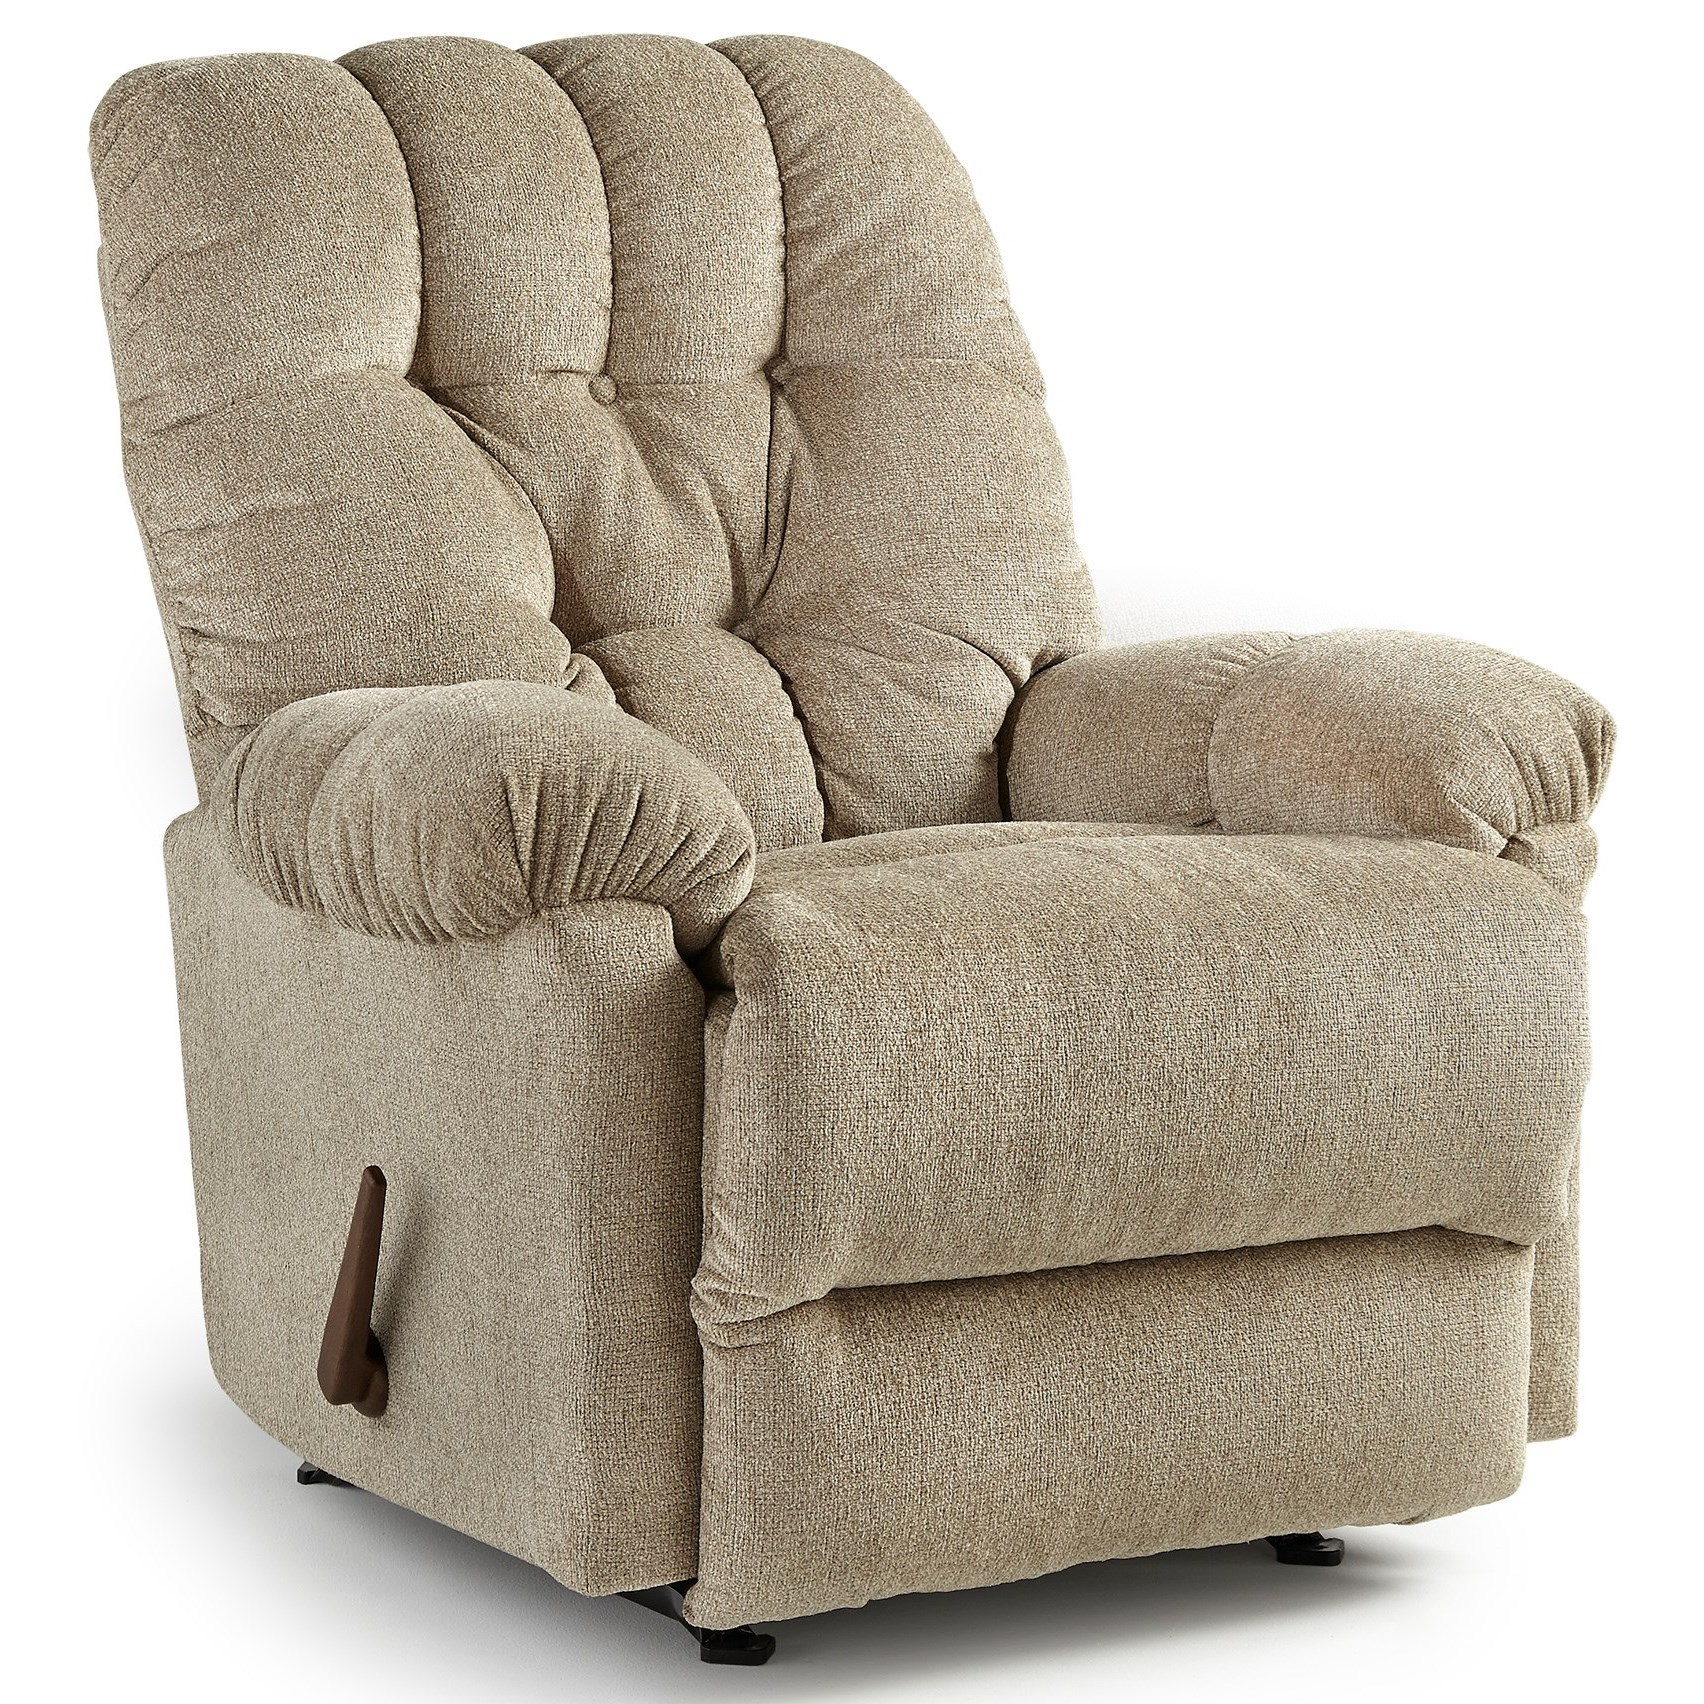 recliner swivel chair high back go anywhere 2 best home furnishings recliners medium raider